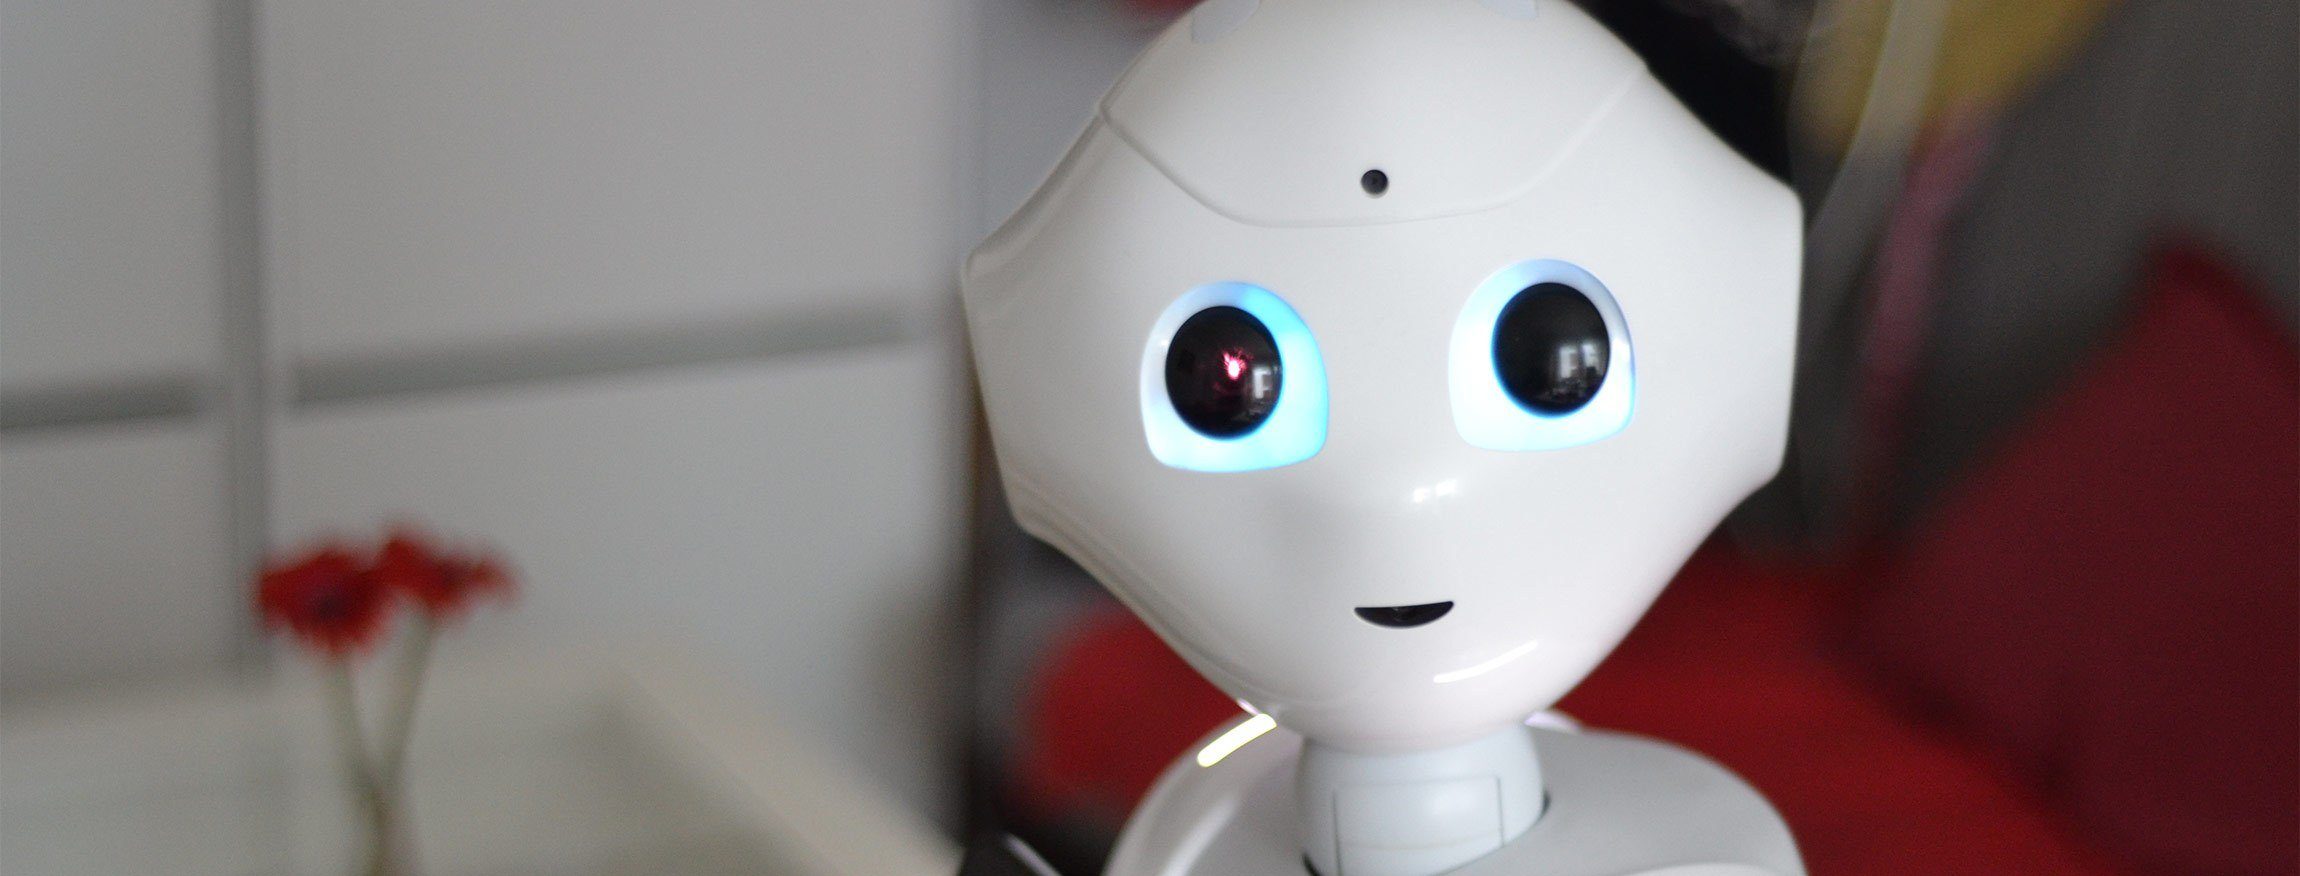 Pepper Robot Title Picture